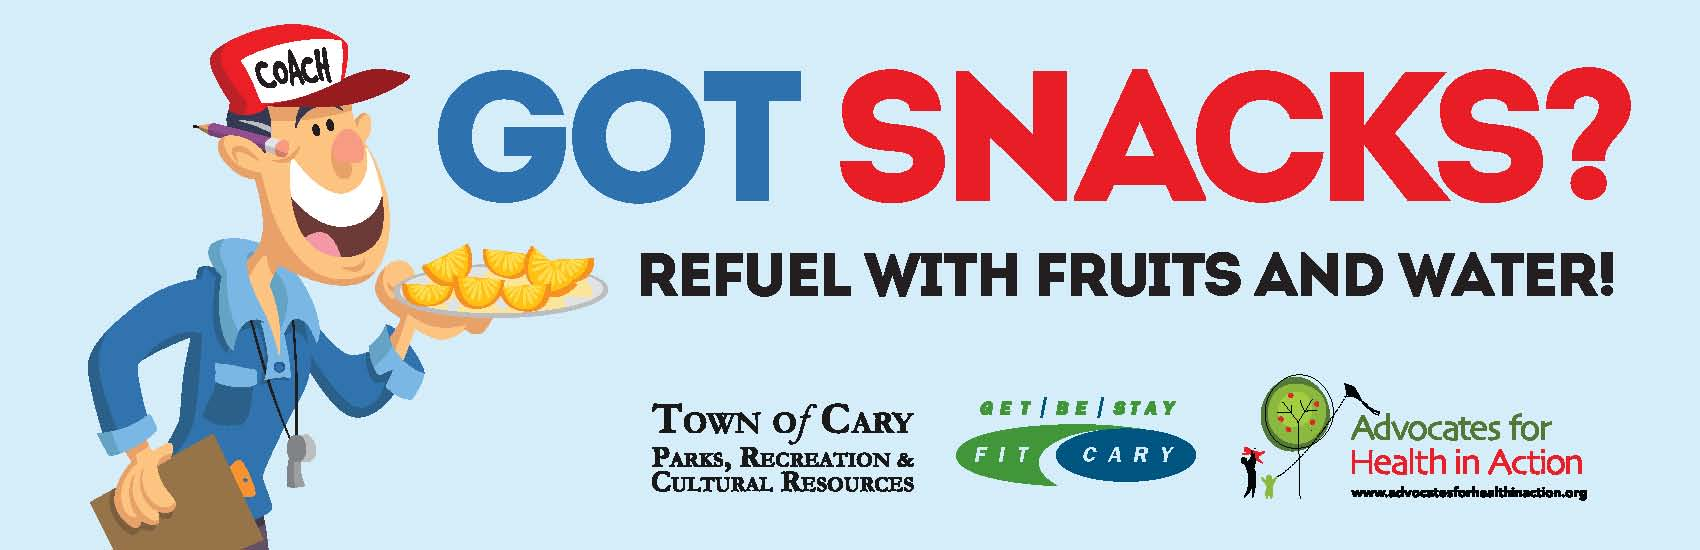 Got Snacks? Refuel with fruits and water!